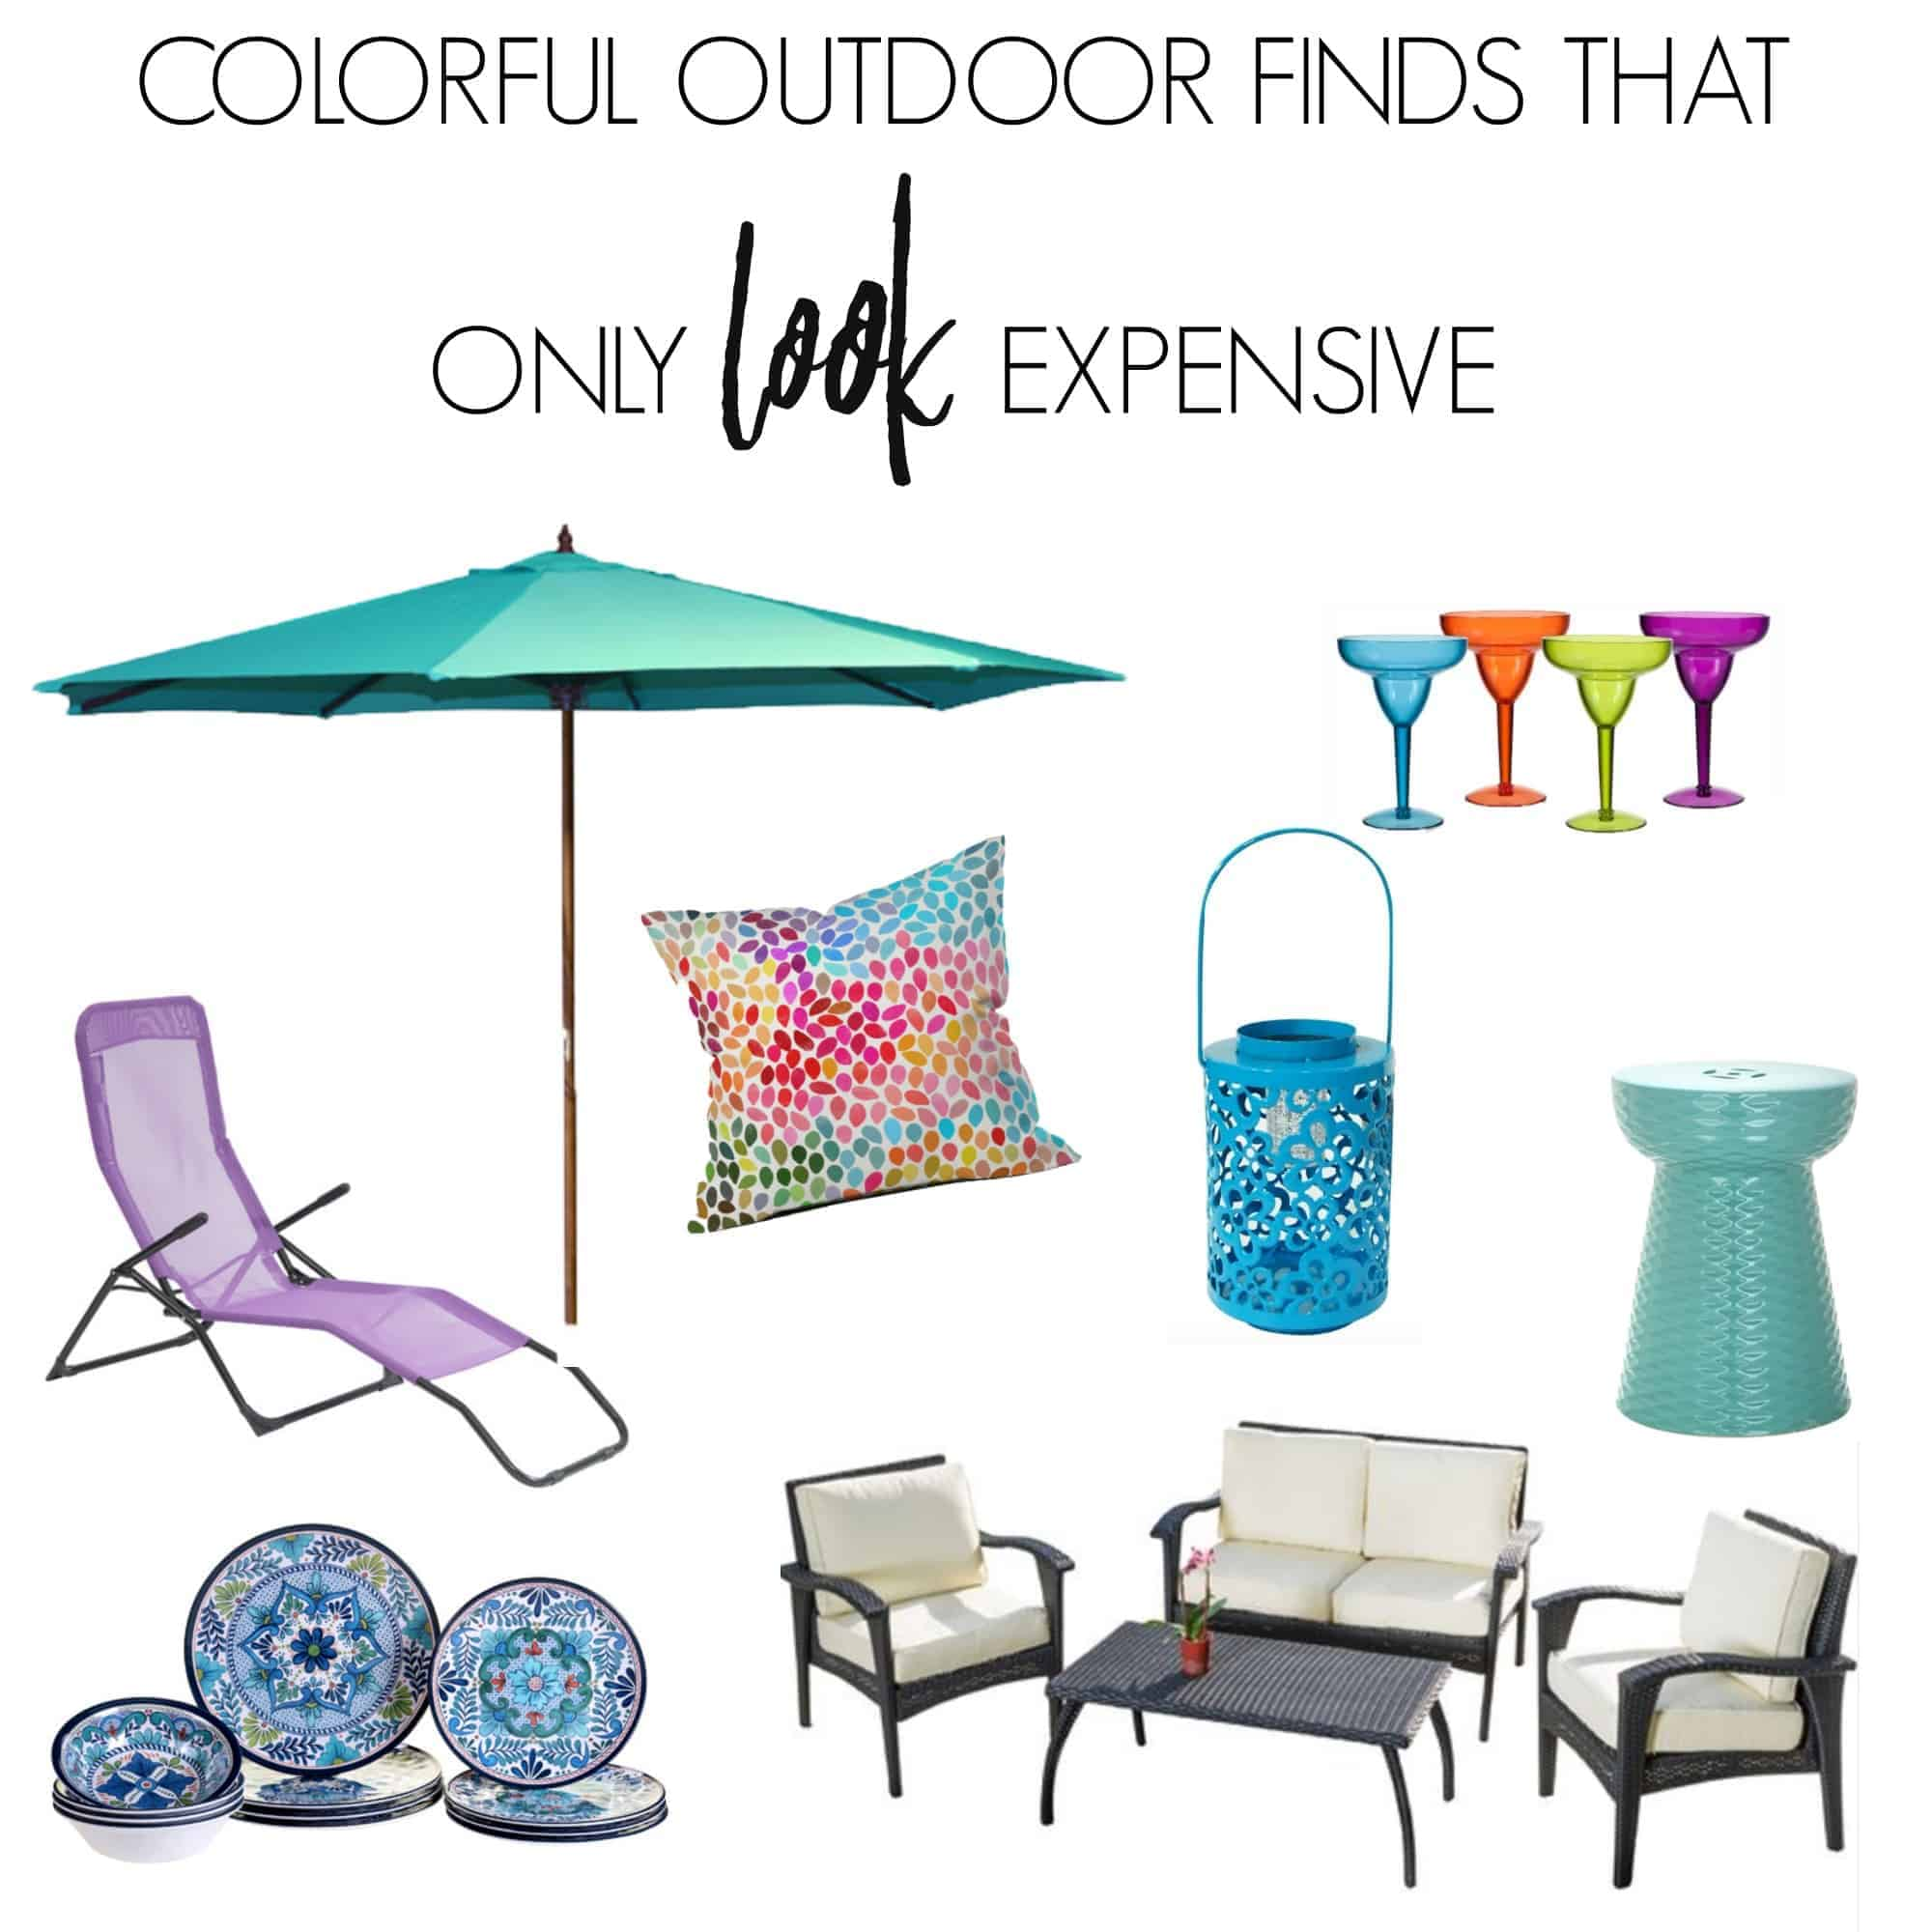 colorful outdoor finds